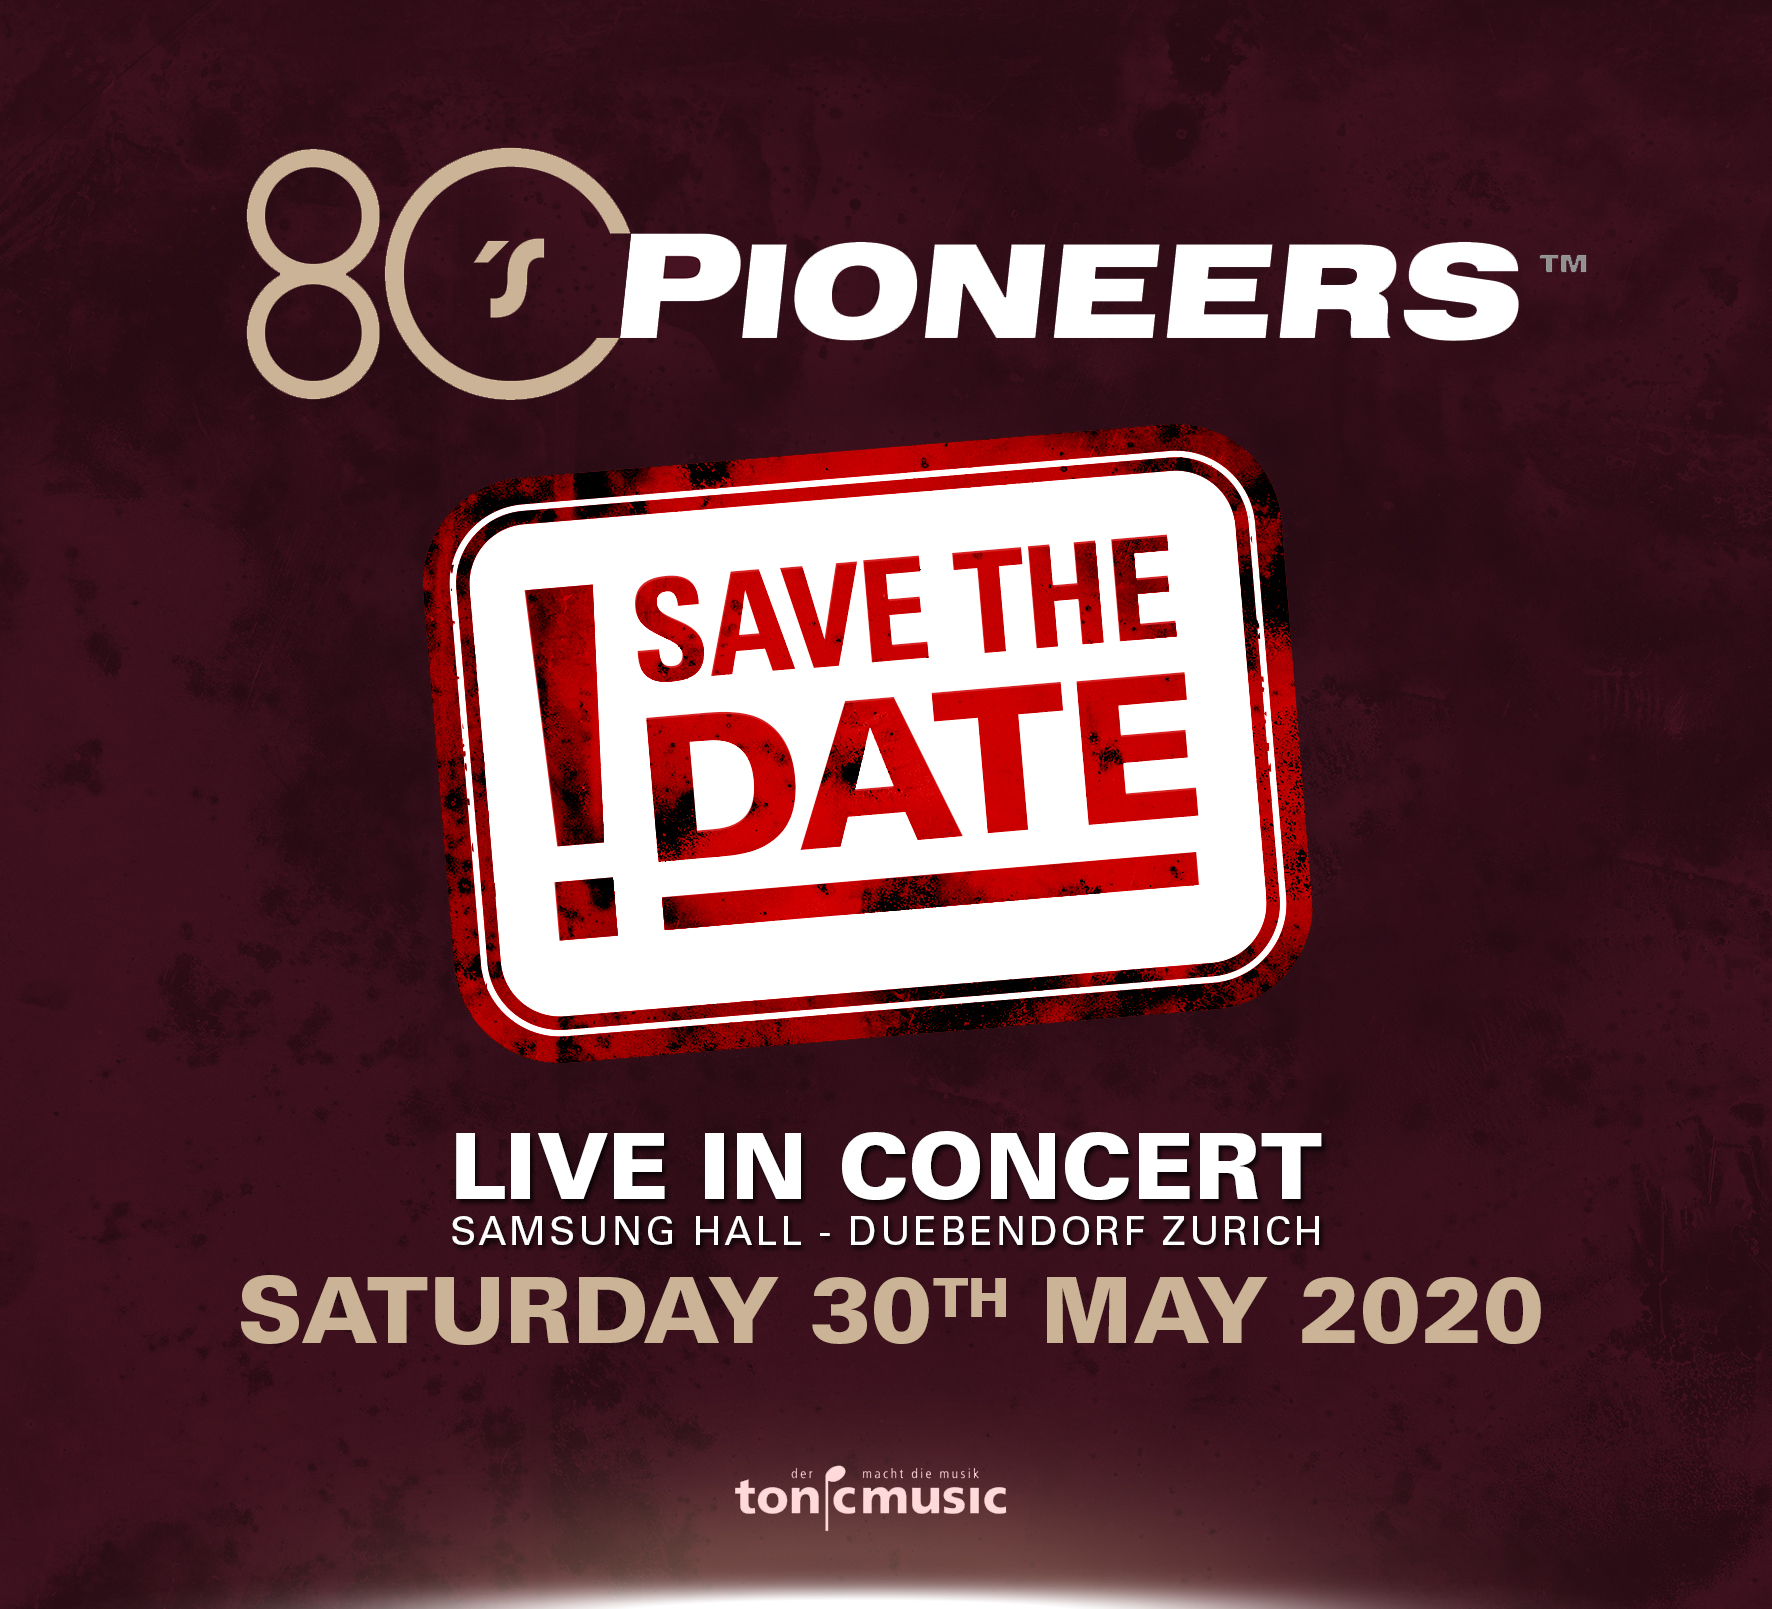 """80s PIONEERS"" GIG IN ZURICH ON MAY 30"